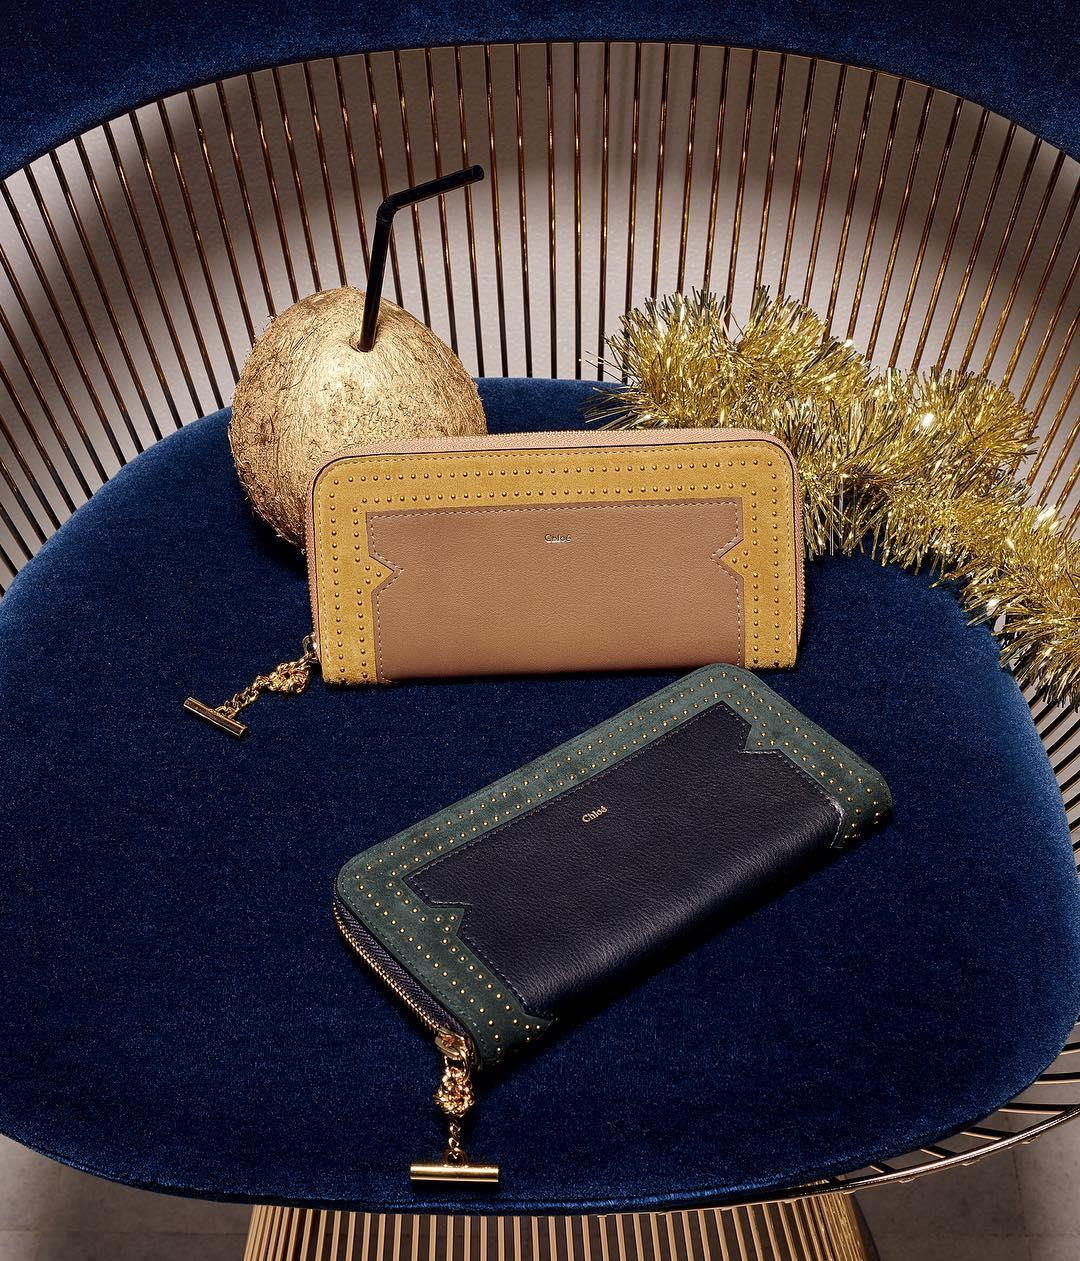 Trinkets & treats – our studded Joe wallet comes in joyous shades of warm mustard and deep blue for the holidays